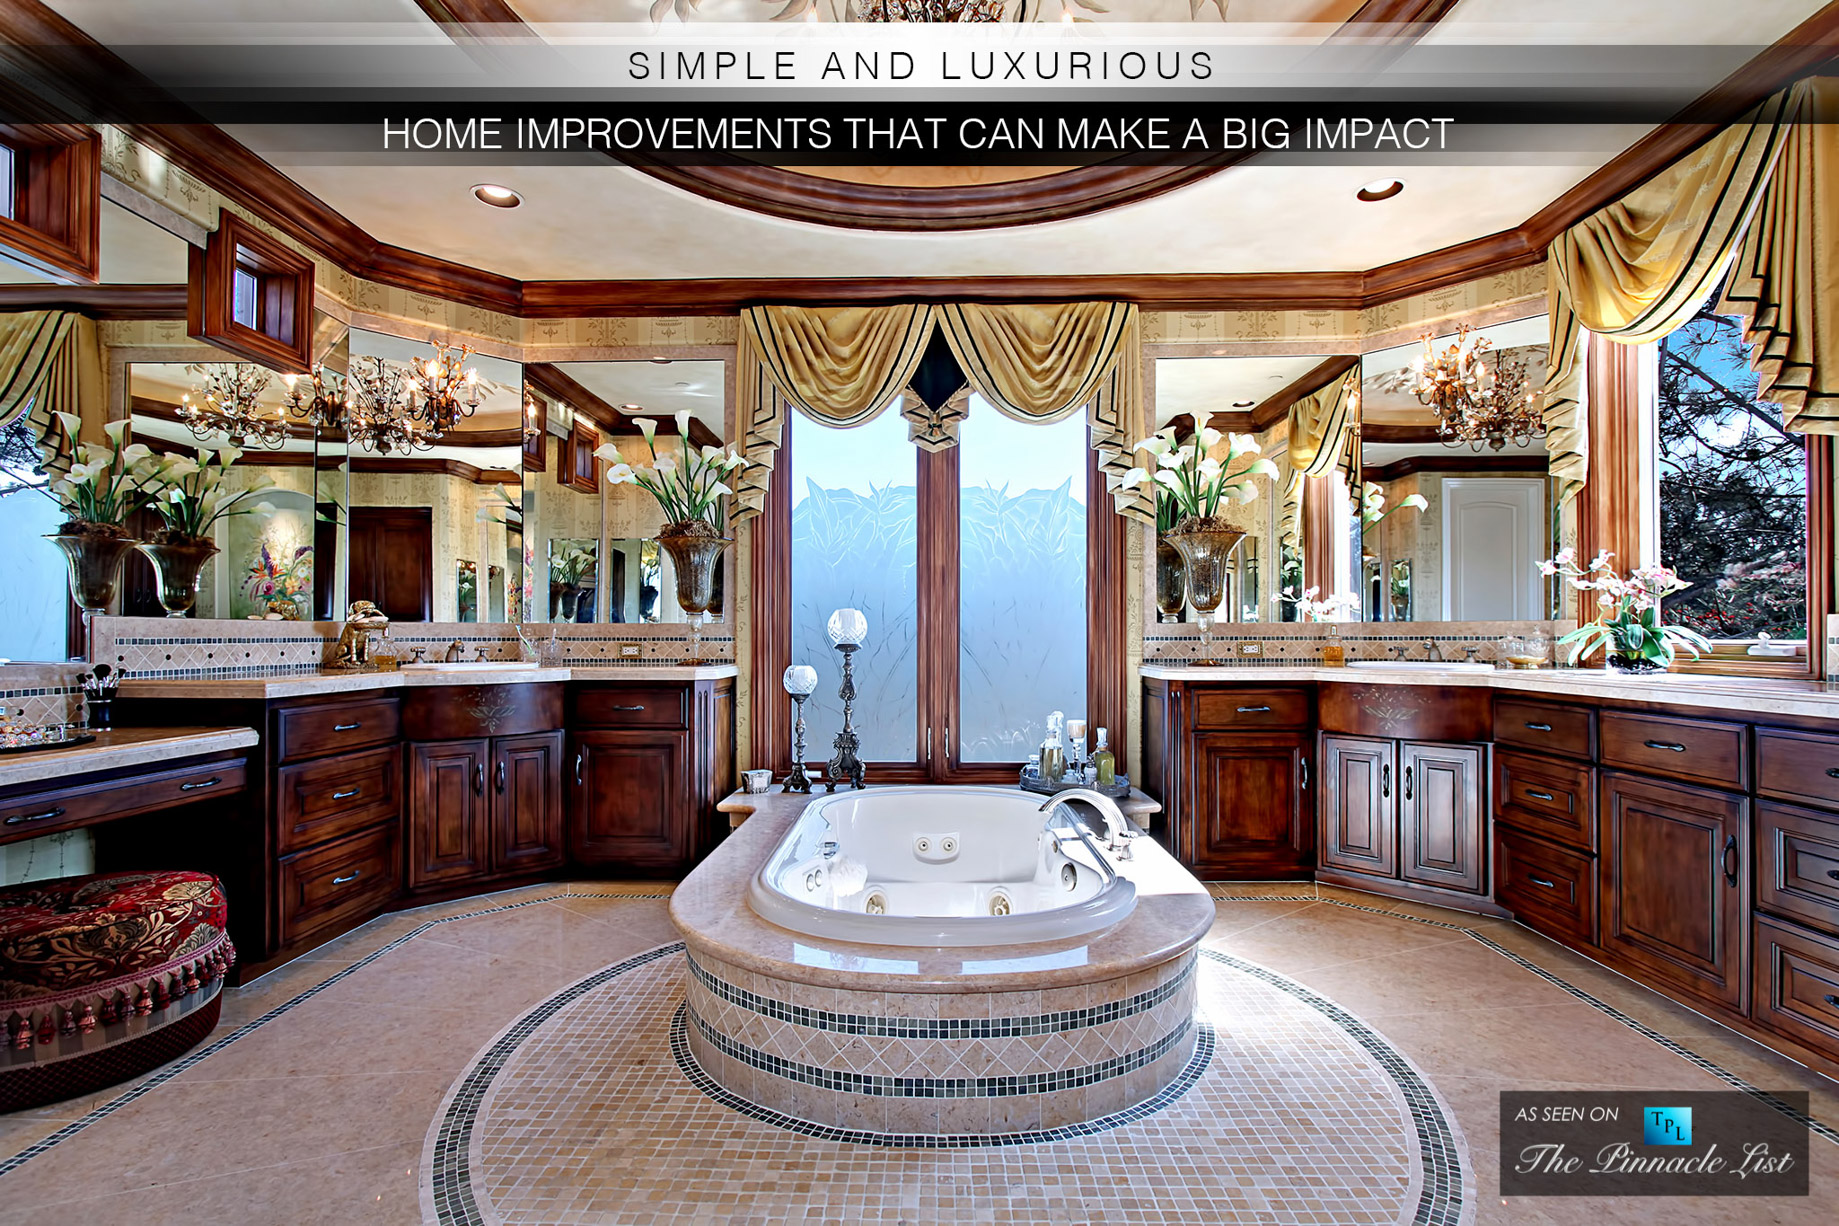 Simple and Luxurious Home Improvements That Can Make a Big Impact